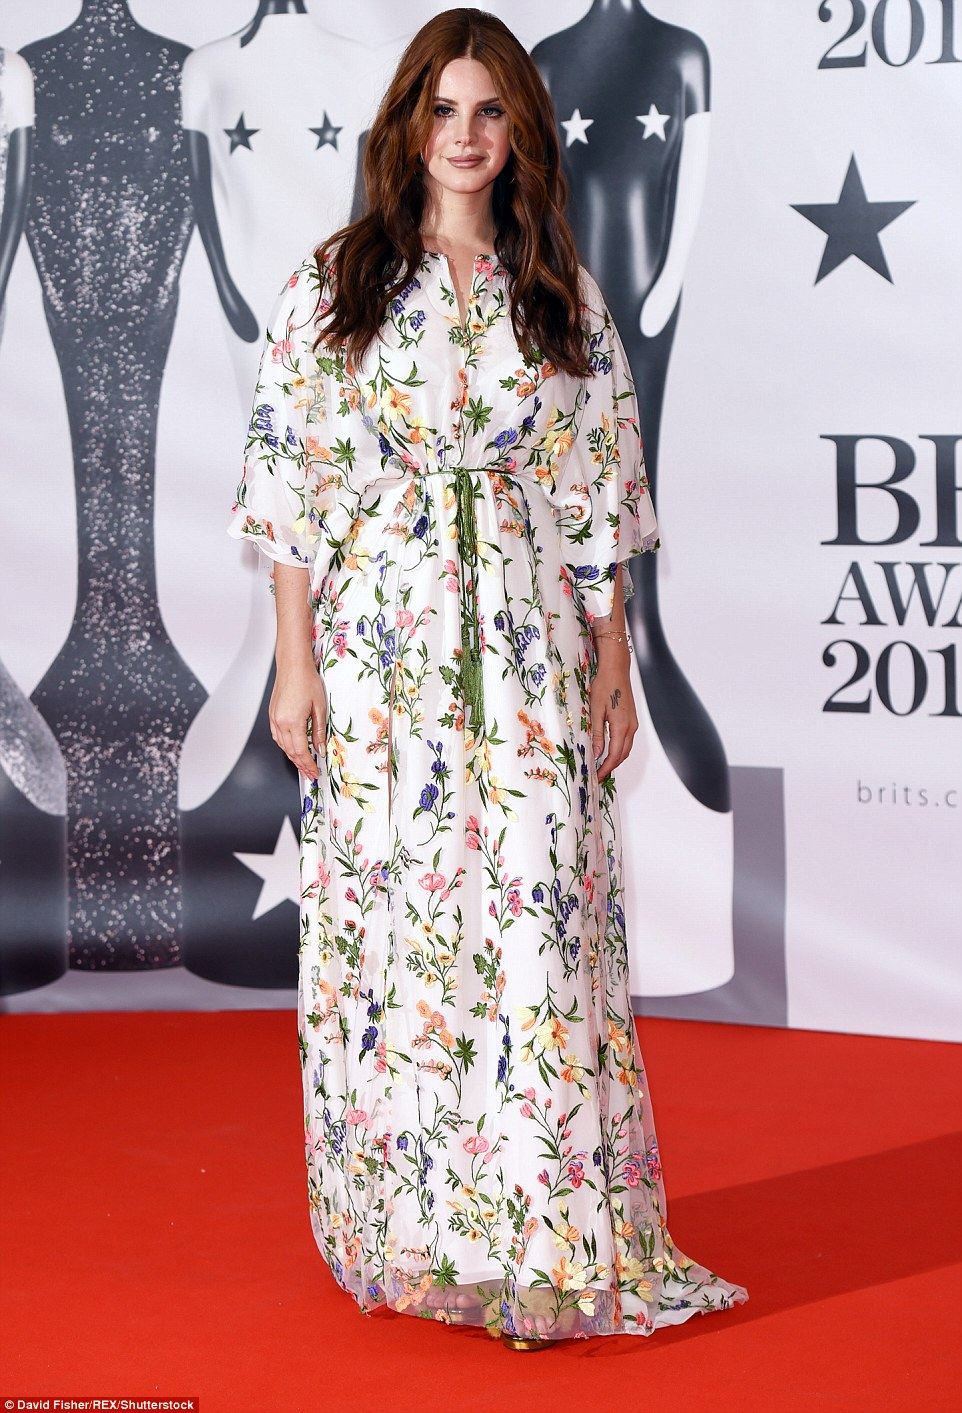 3185D68500000578-3462539-Country_singer_Lana_Del_Rey_opted_for_what_can_only_be_described-m-17_1456343995242